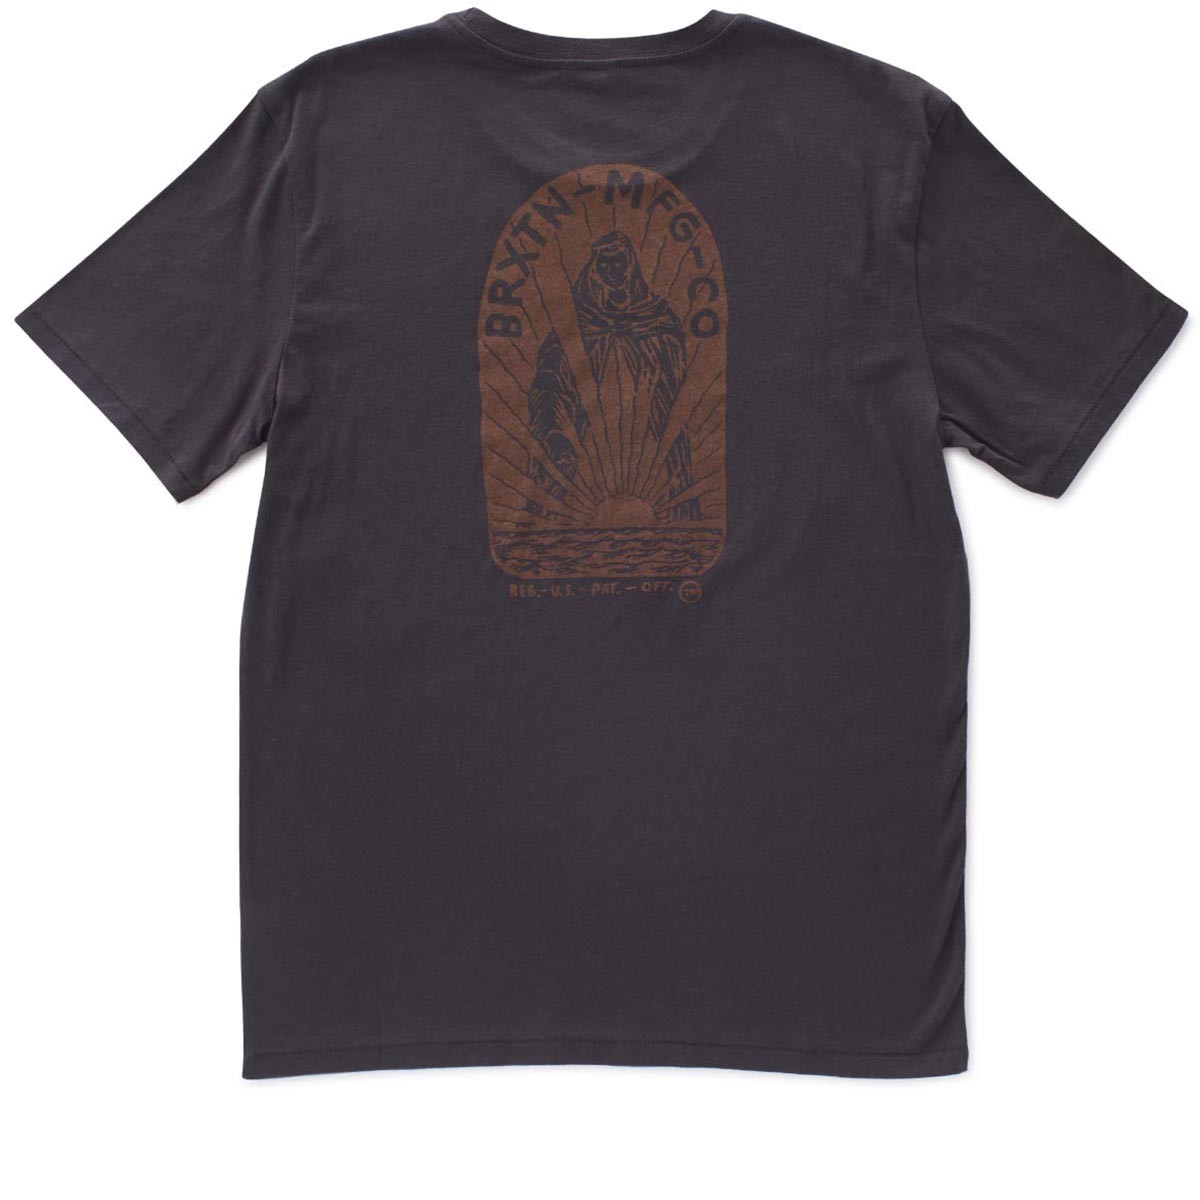 Dawn T-Shirt - Washed Black